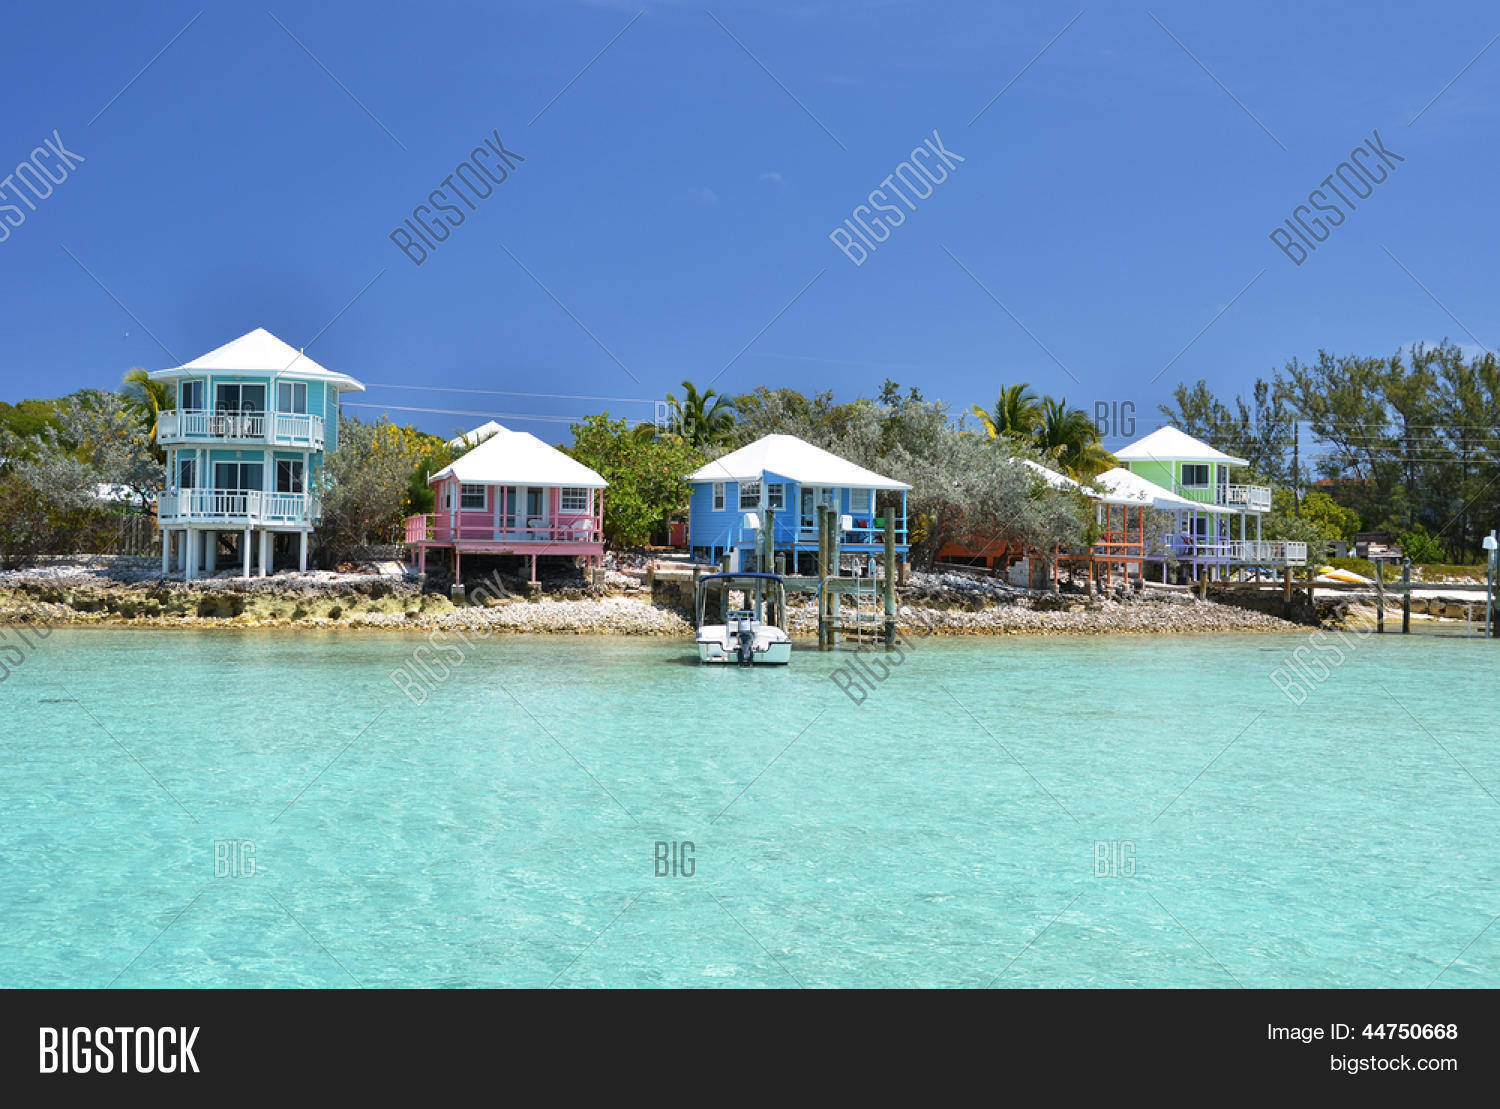 Staniel Cay Yacht Club Image & Photo (Free Trial) | Bigstock